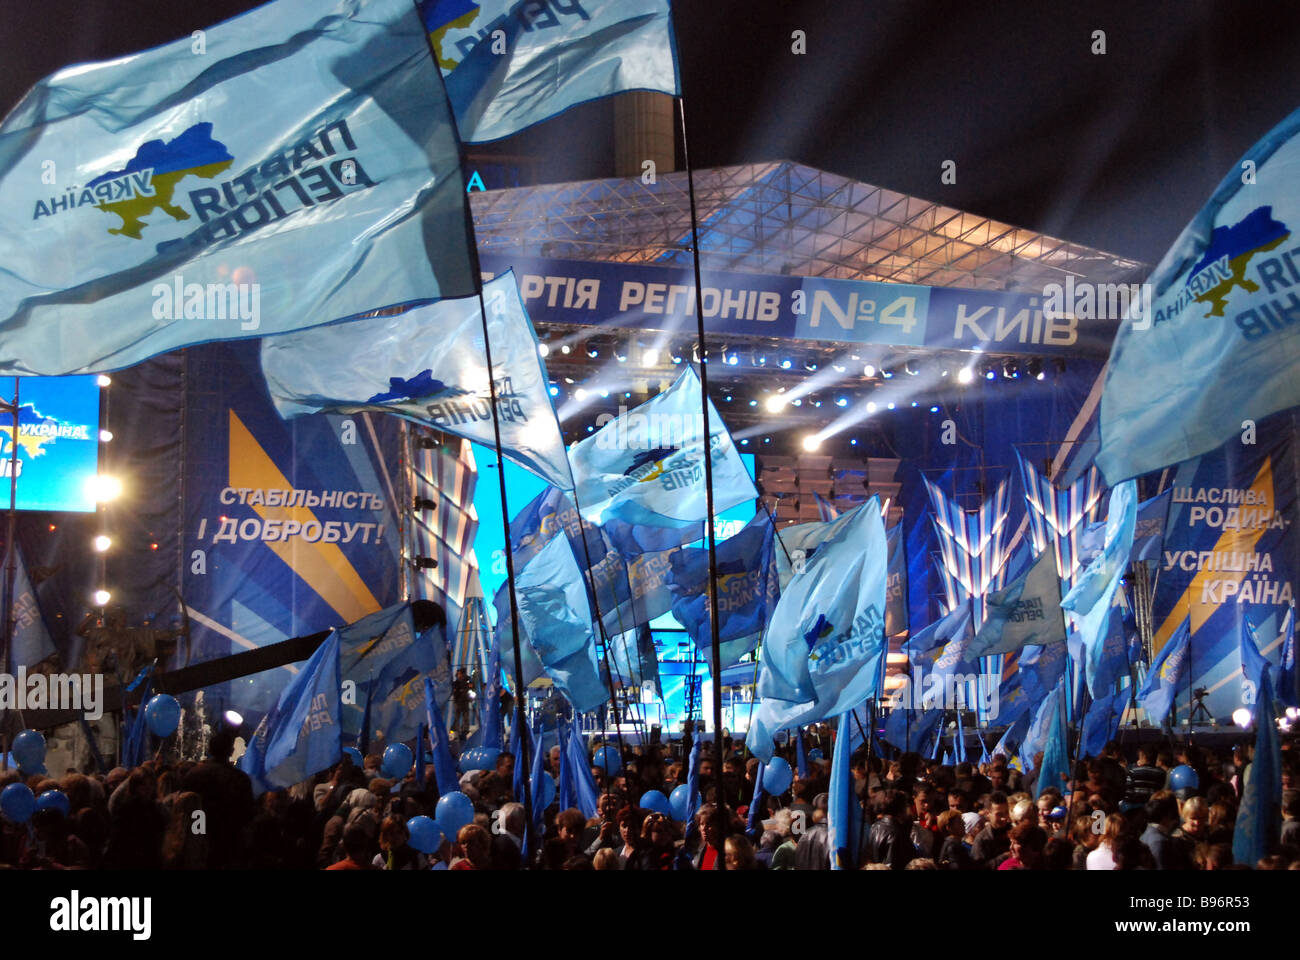 The Party of Regions ended its election campaign with a rally on Independence Square in Kiev - Stock Image